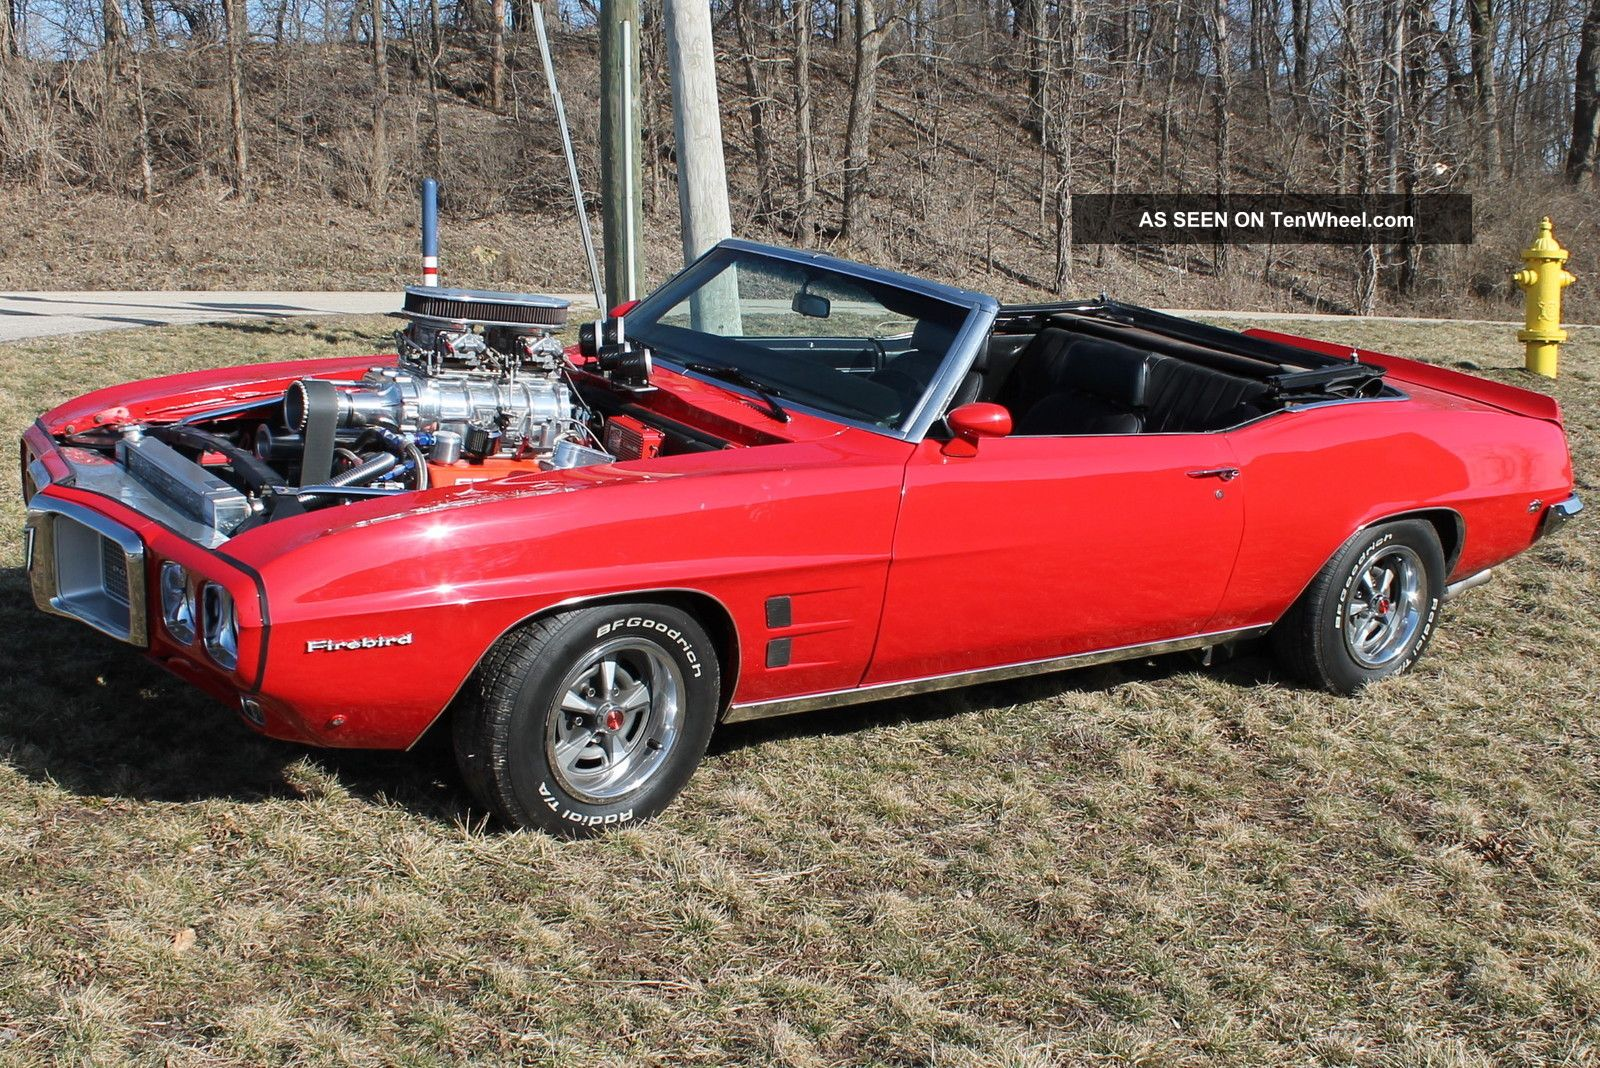 1969 red firebird convertible with 572 motor 912 hp great car